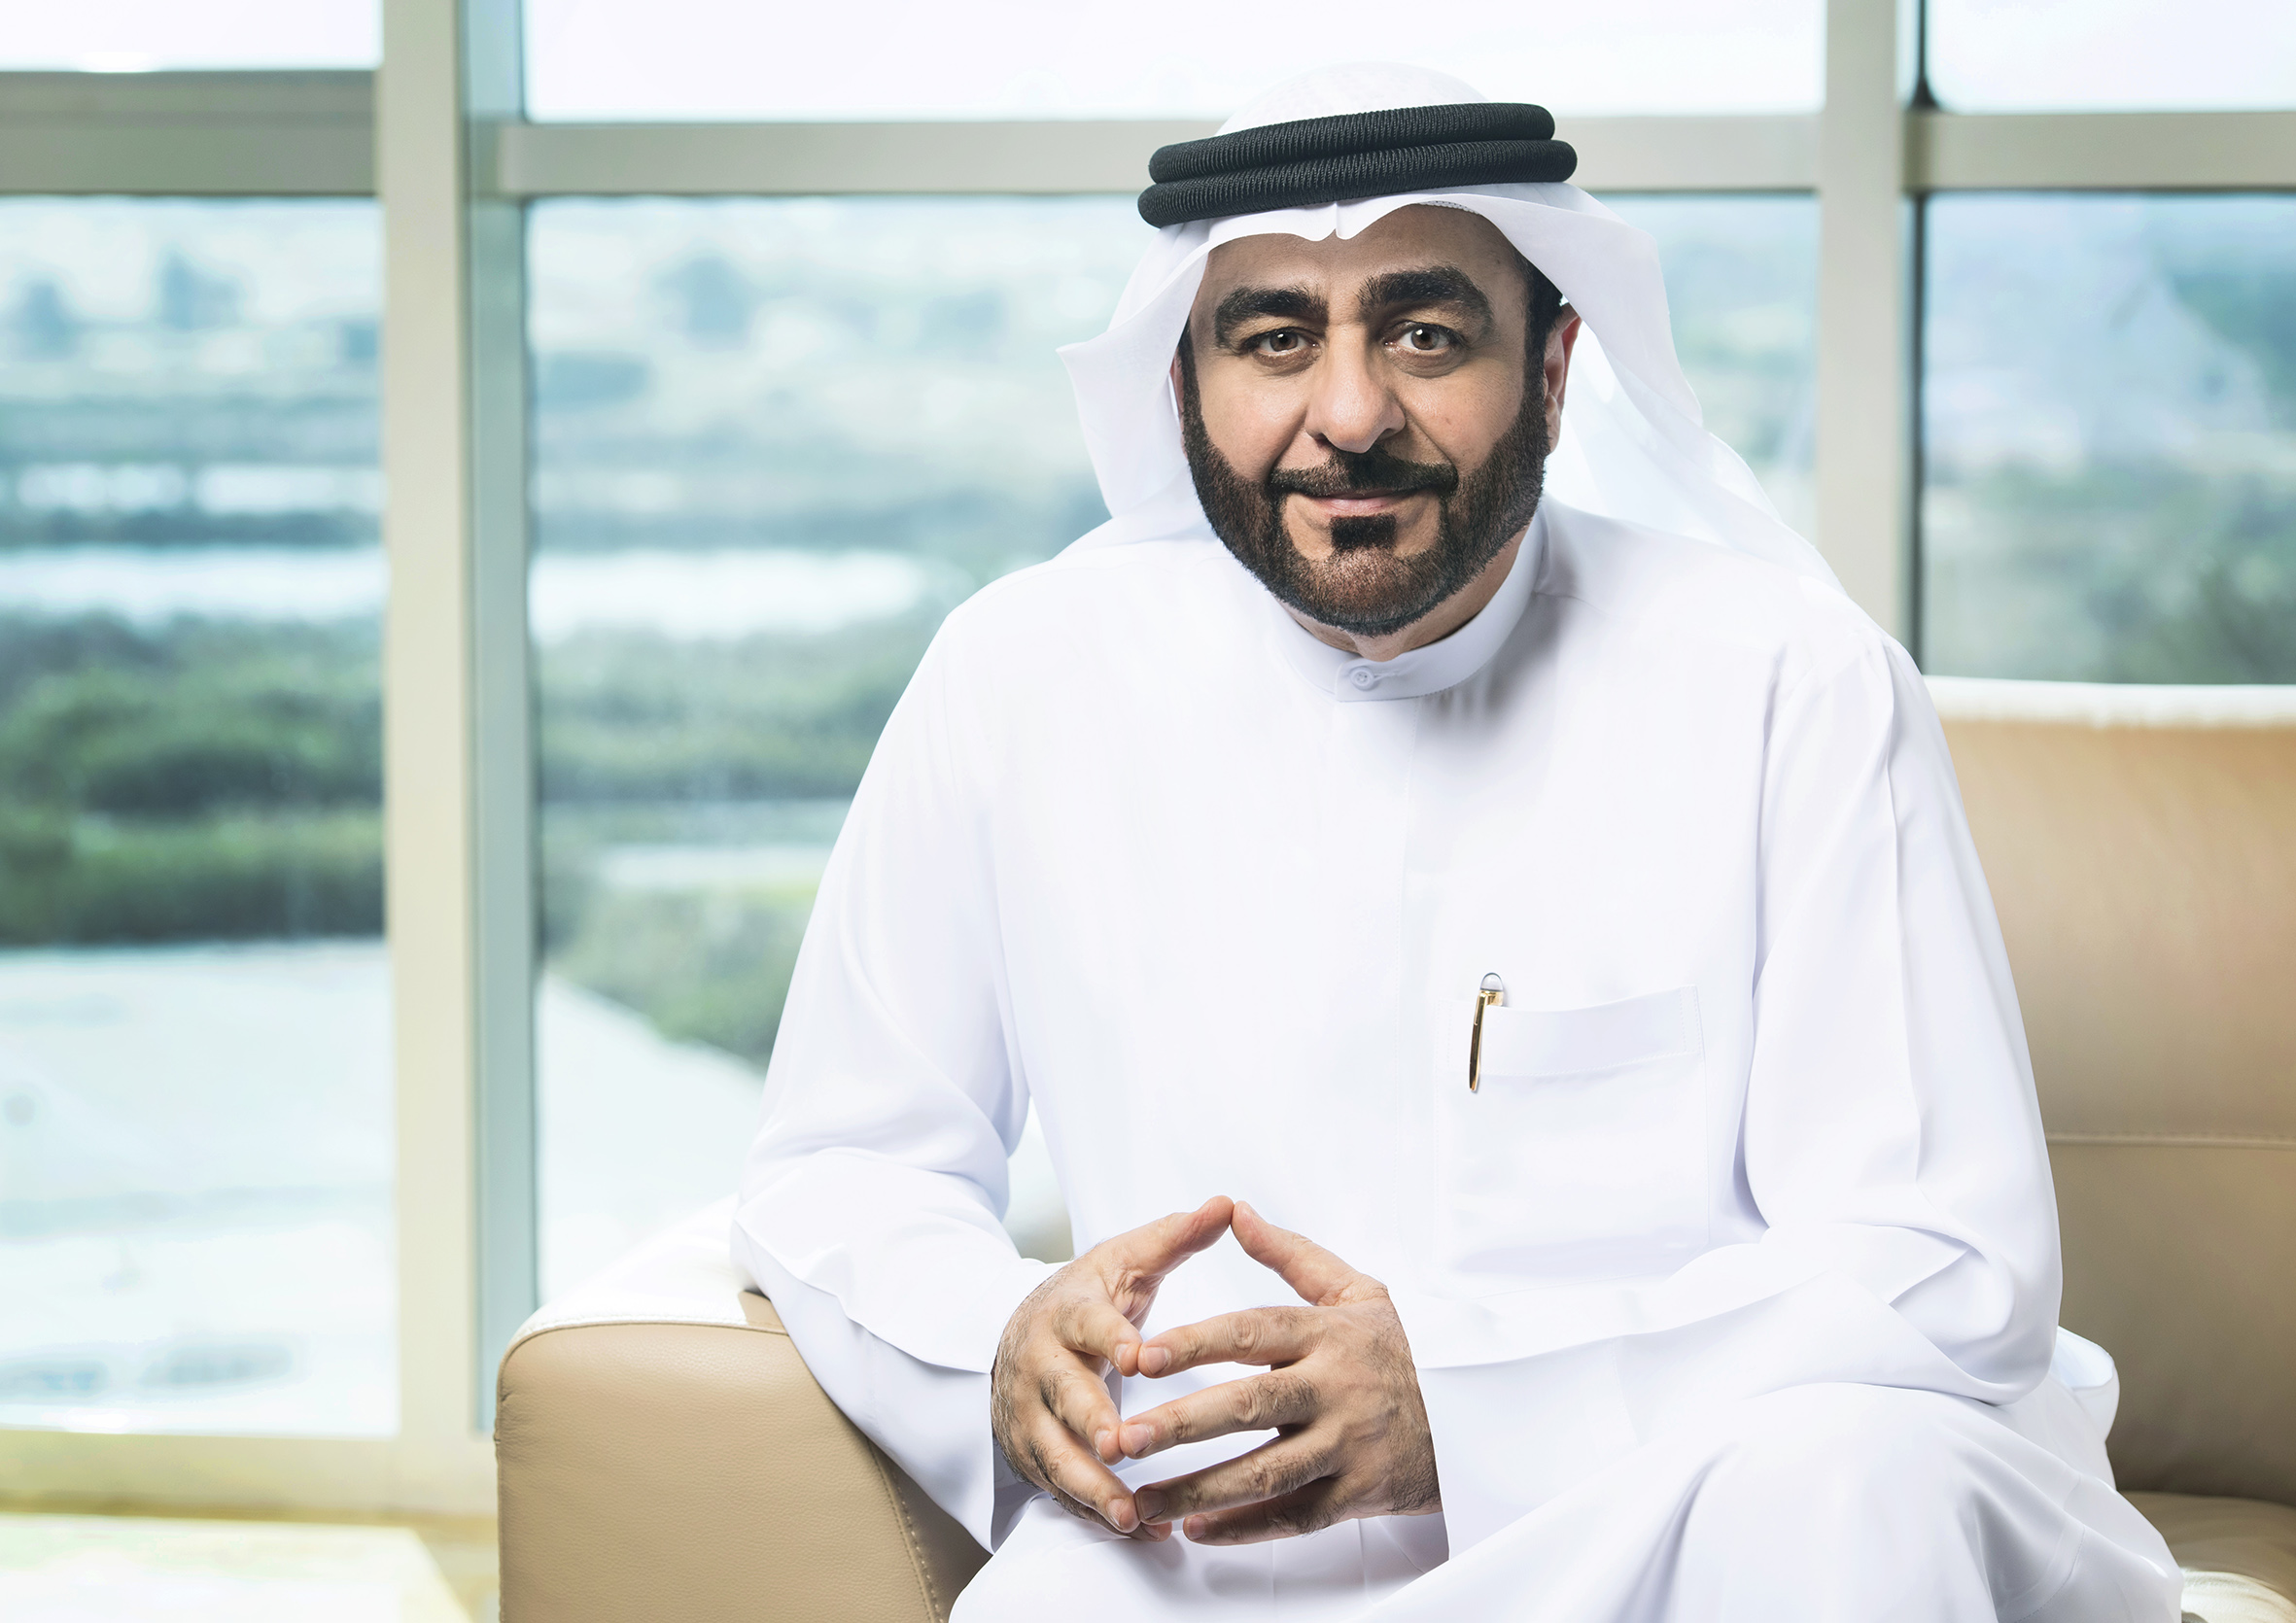 UNESCO renews Dr. Mansoor Al Awar's chairmanship of the Governing Board of Institute for Information Technologies in Education (IITE)